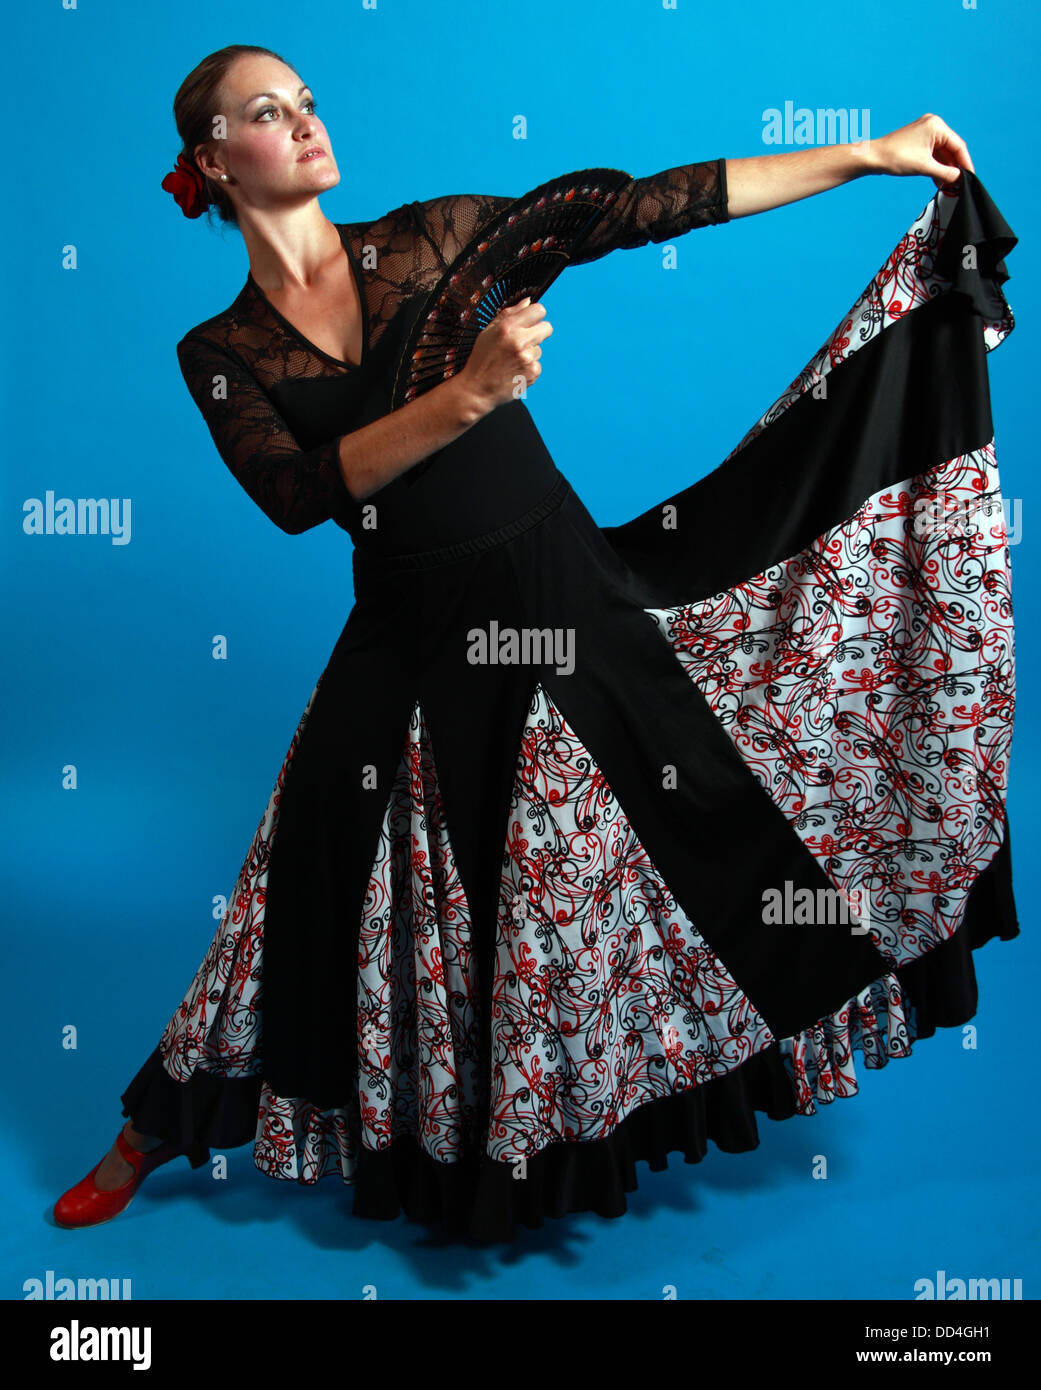 Flamenco dance moves, lady in a black dress with fan Stock Photo